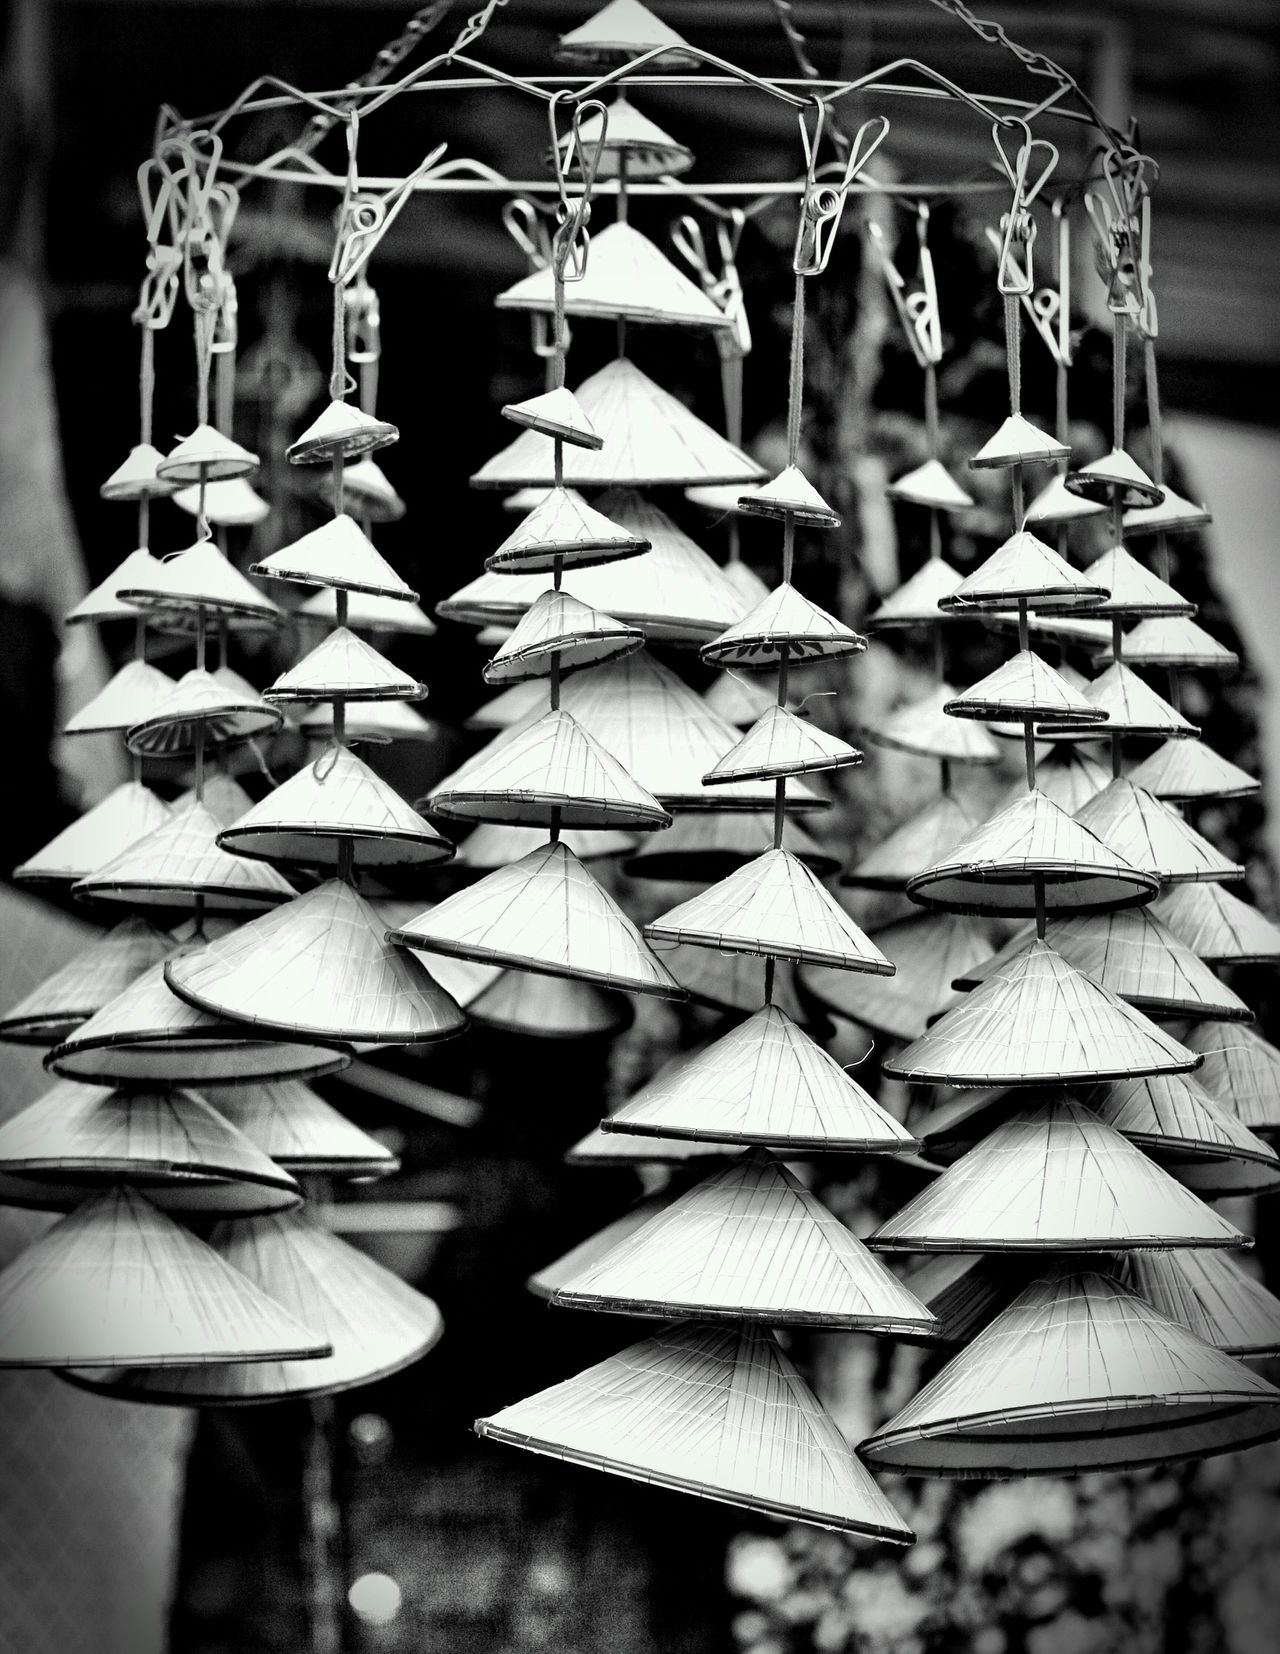 Vietnam Vietnamese Non La Hat Repeating Patterns Repeated Pattern Symbol Monochrome Blackandwhite Photography Blackandwhite Black&white Black And White Photography Black & White Black And White OneFrame OneFrame Photography